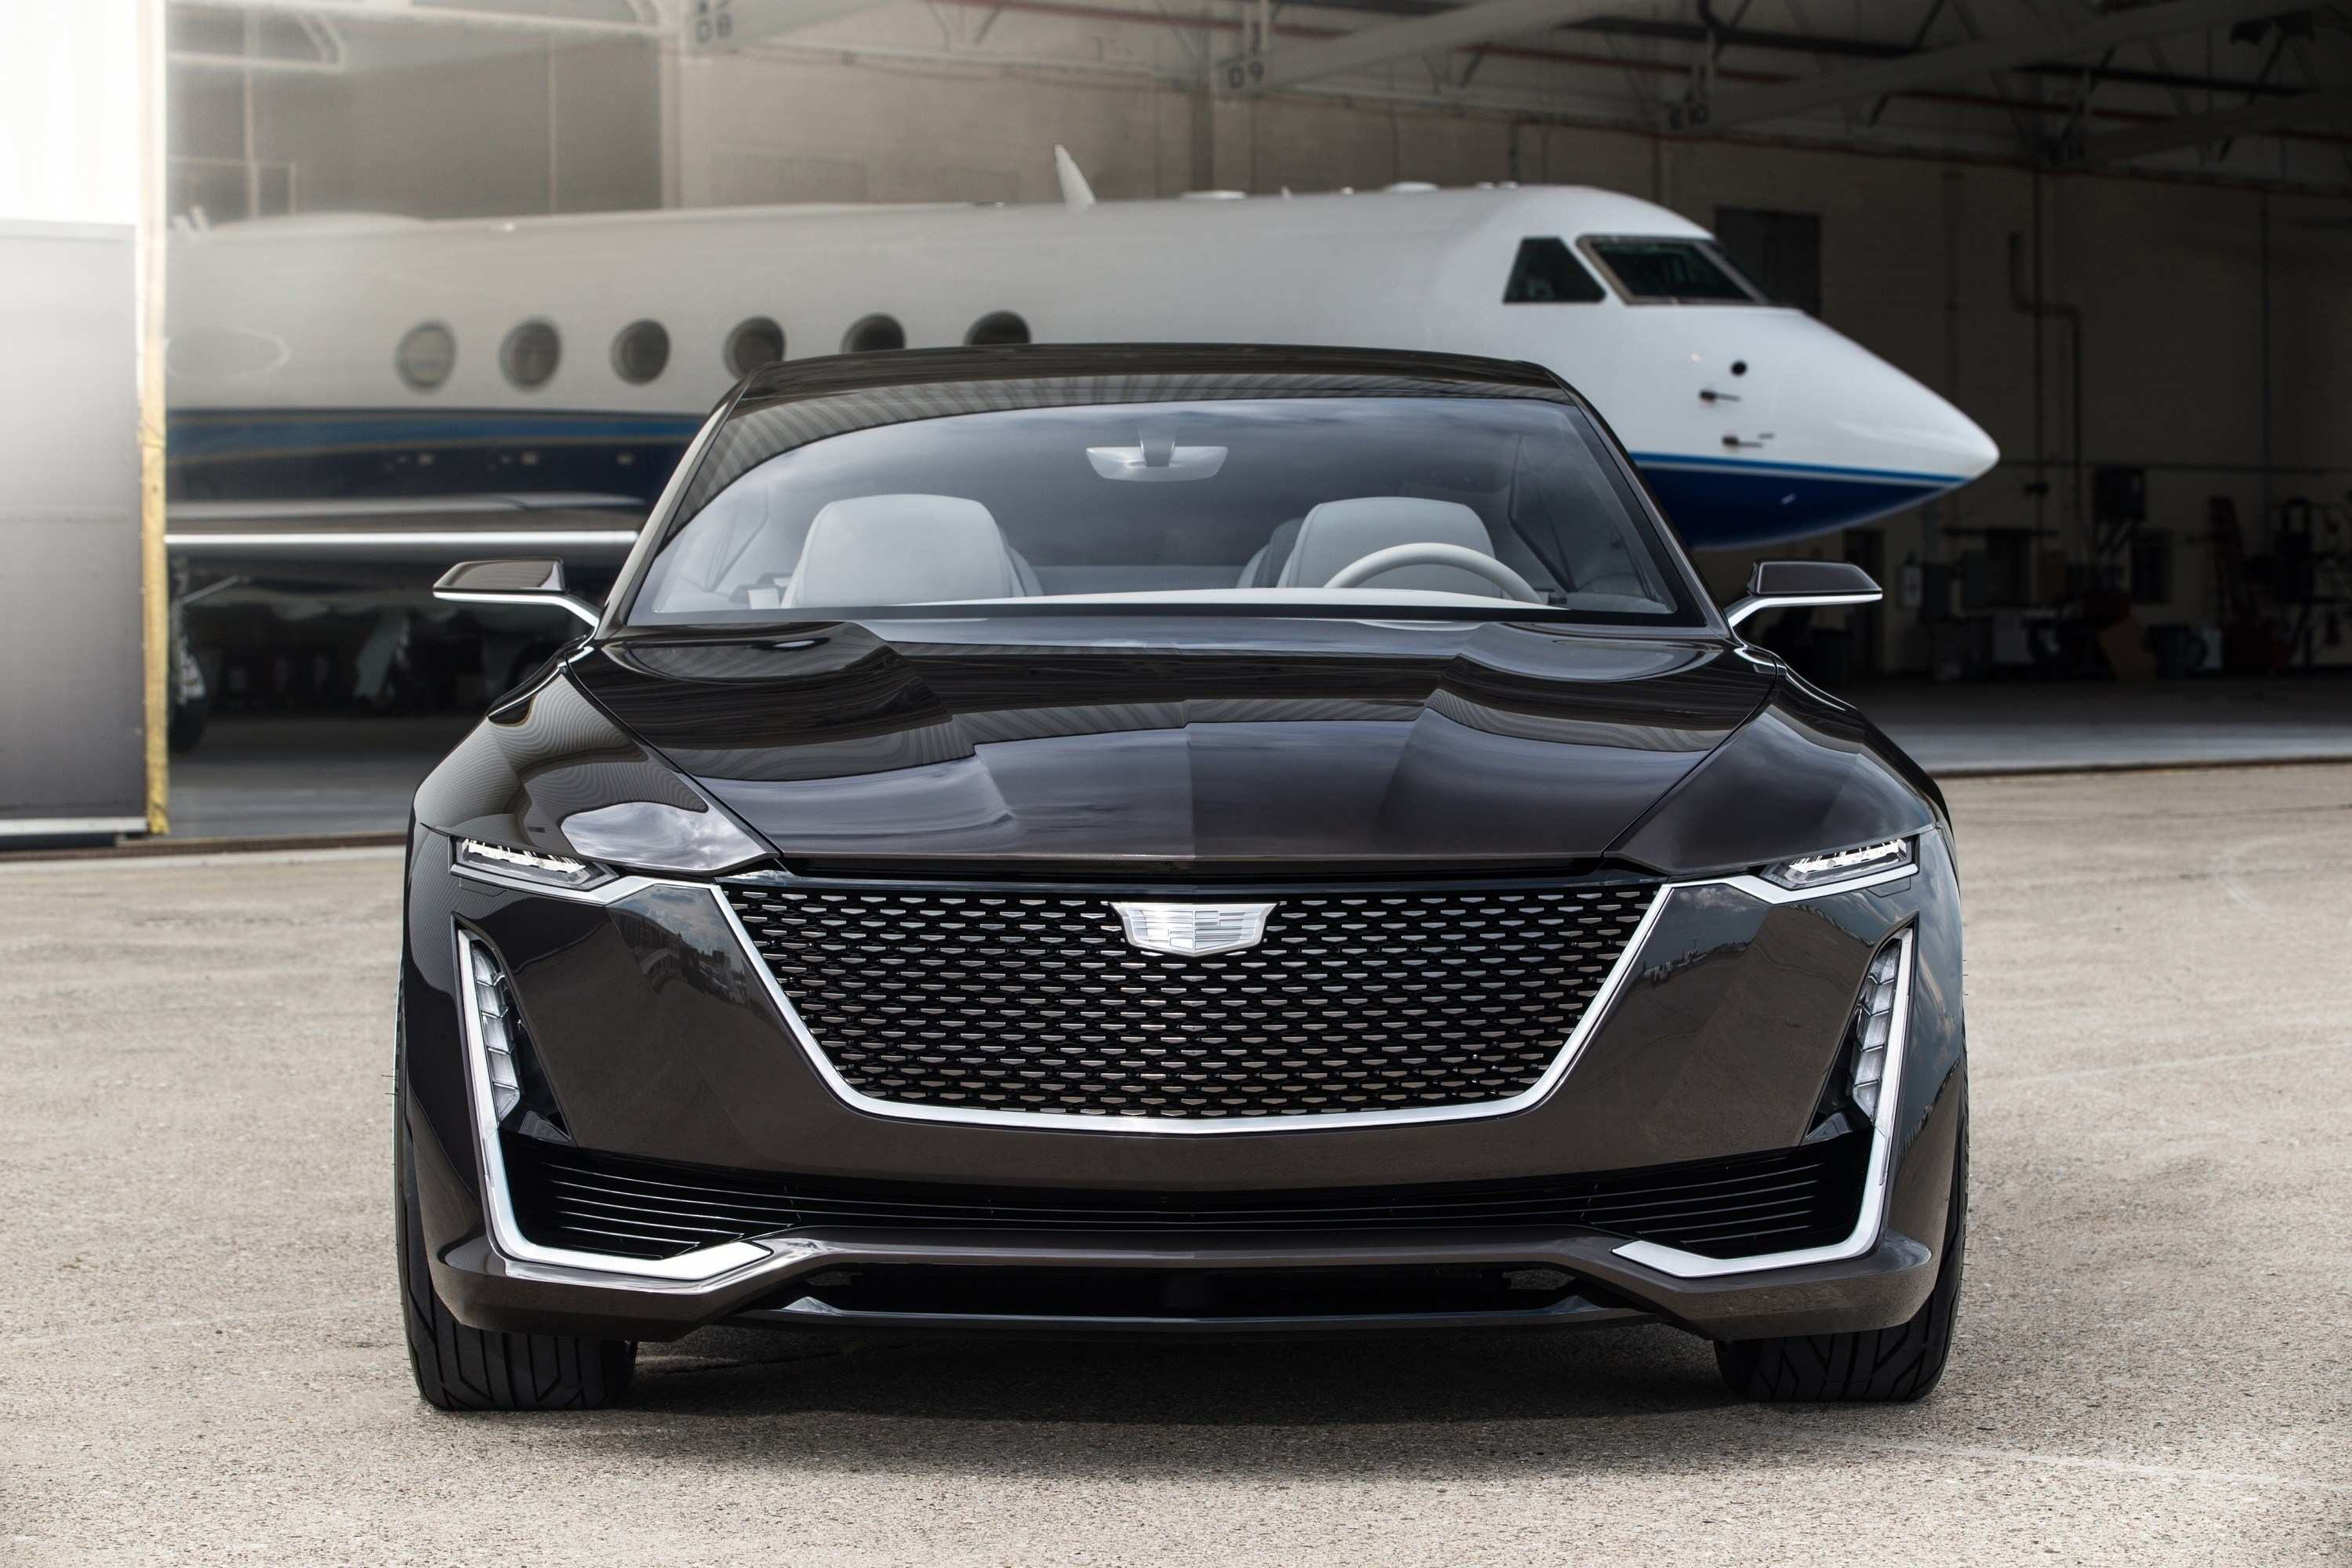 92 A 2020 Cadillac ELR S Images